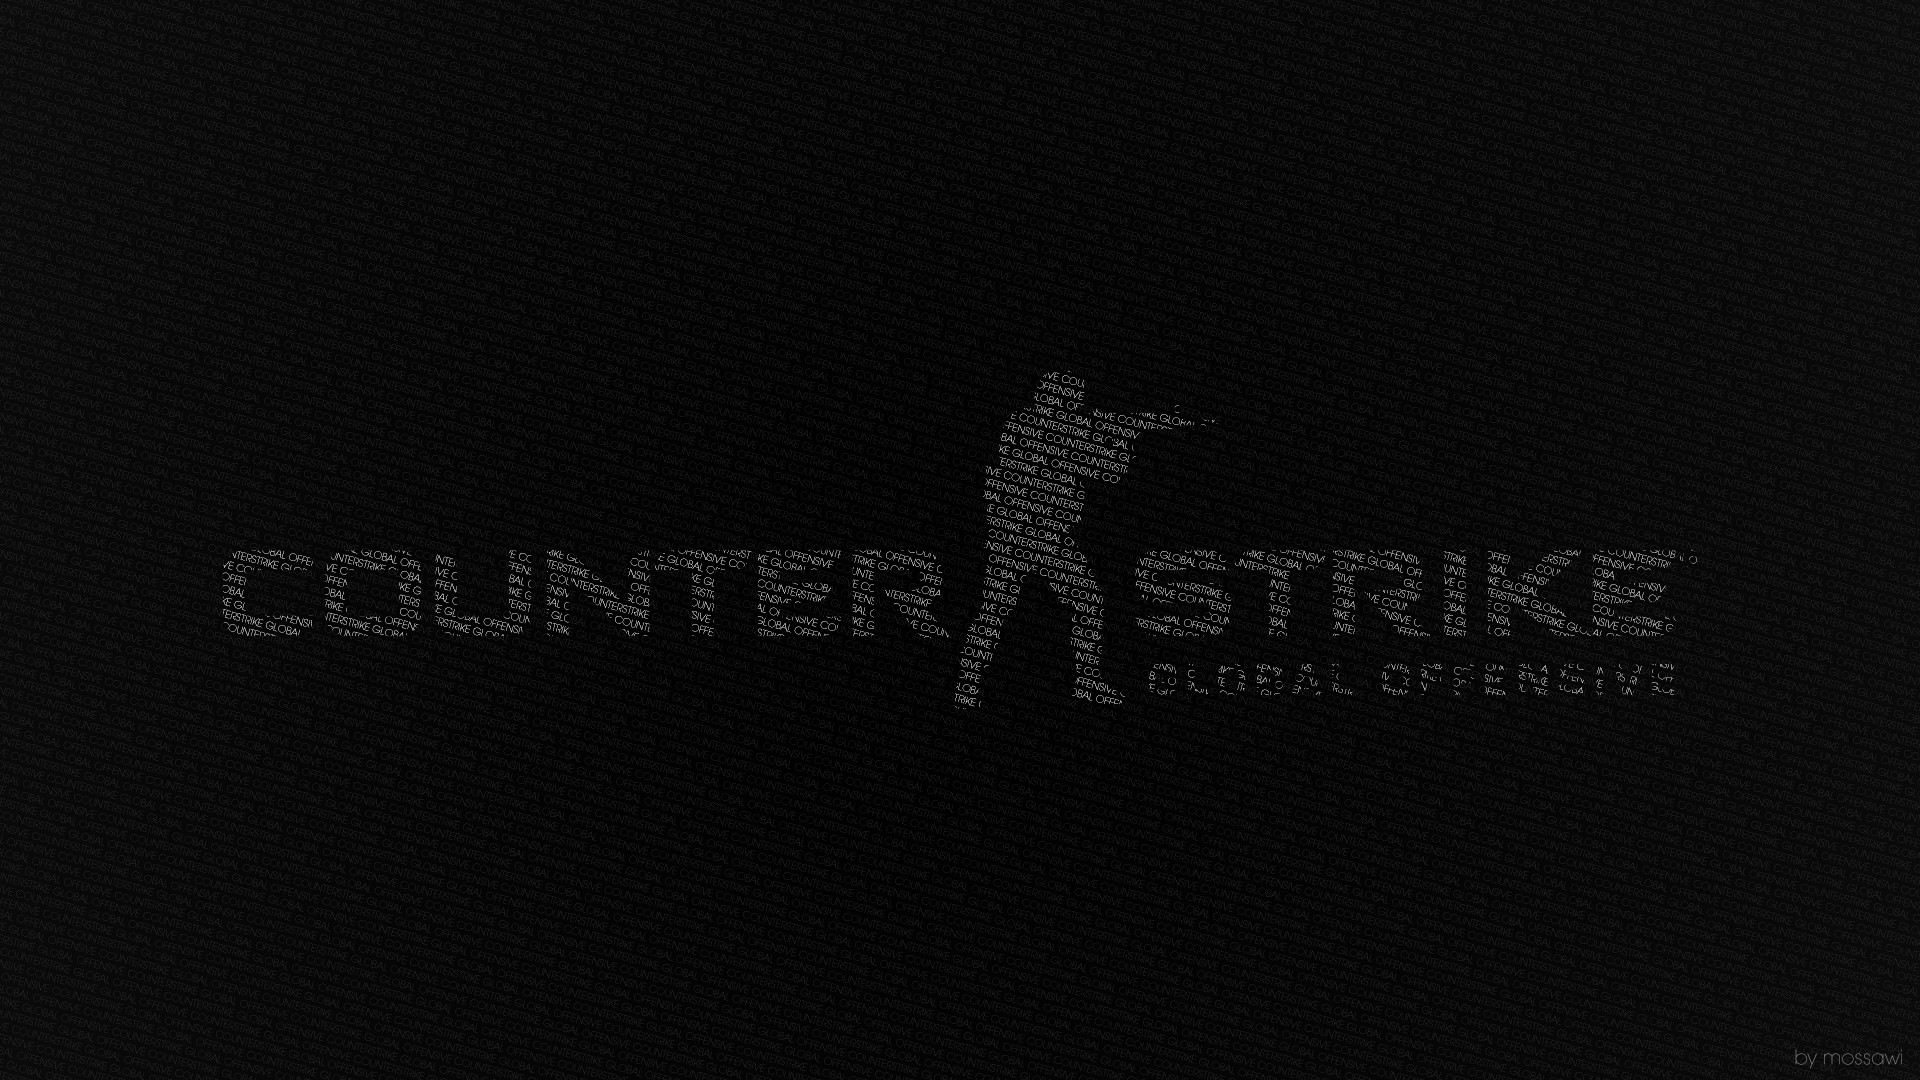 CS:GO Wallpapers – Counter-strike: Global Offensive HD wallpapers made by  the CS:GO community.